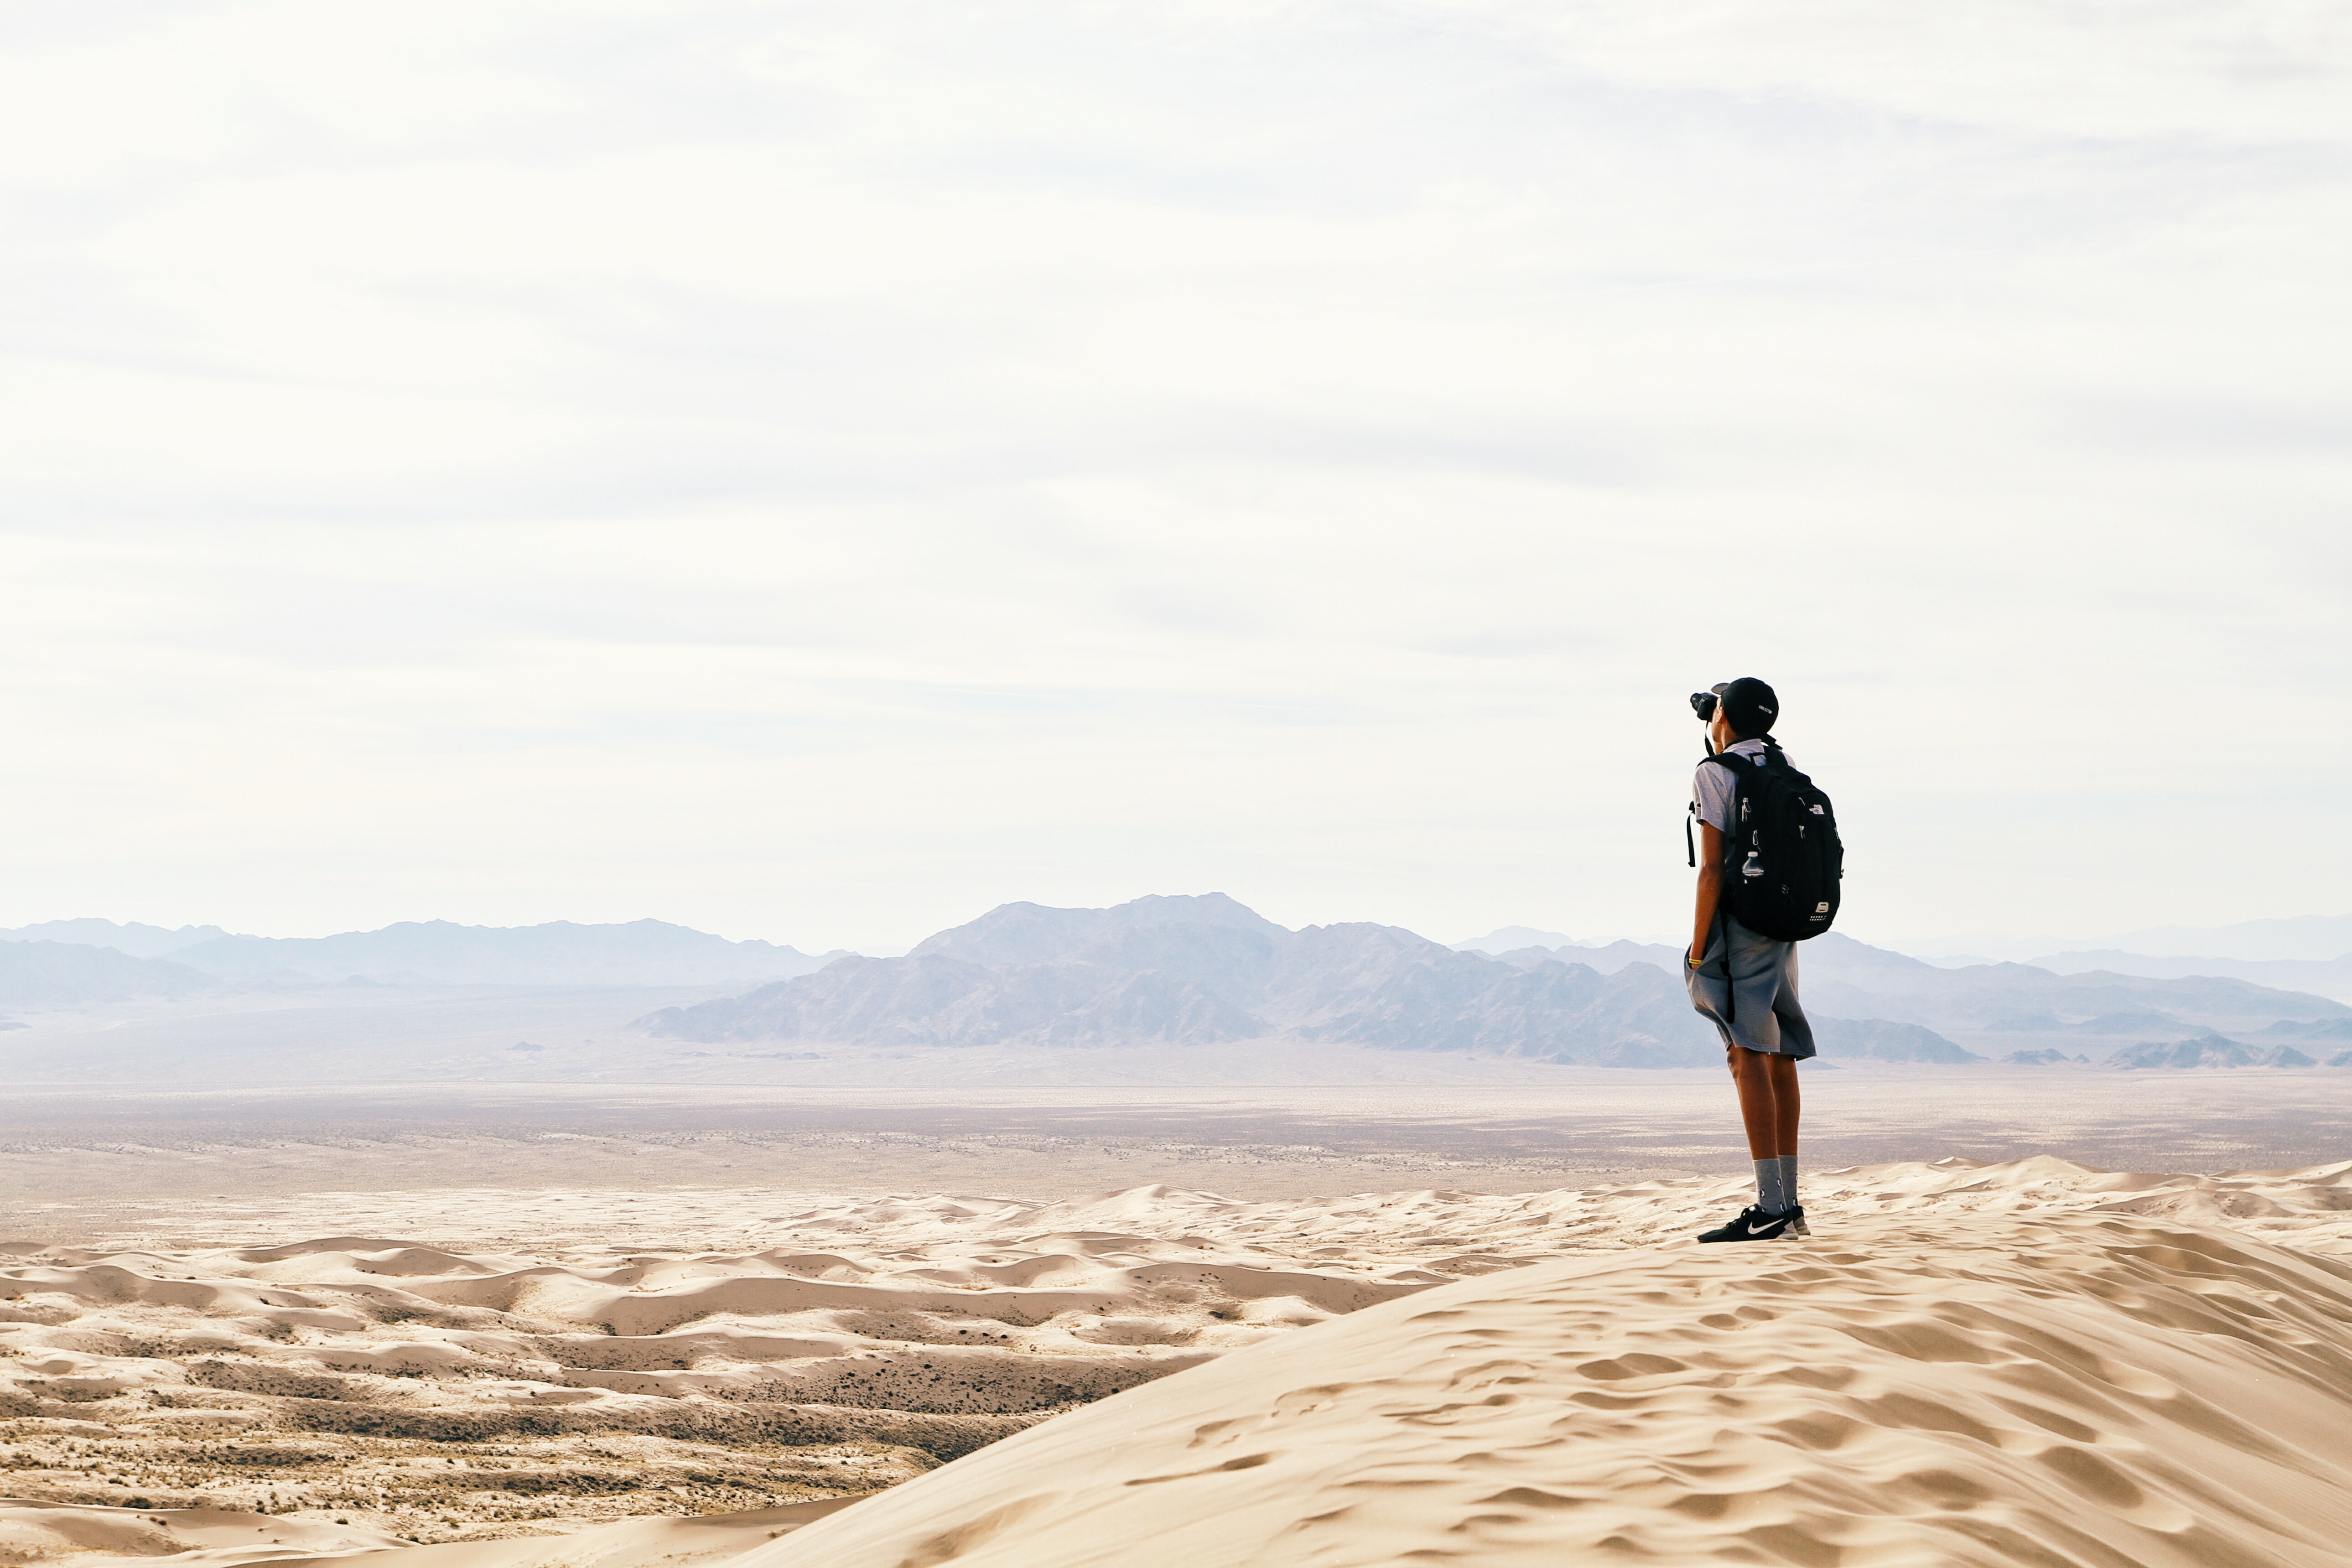 A tourist with a camera standing on top of a sand dune in a desert